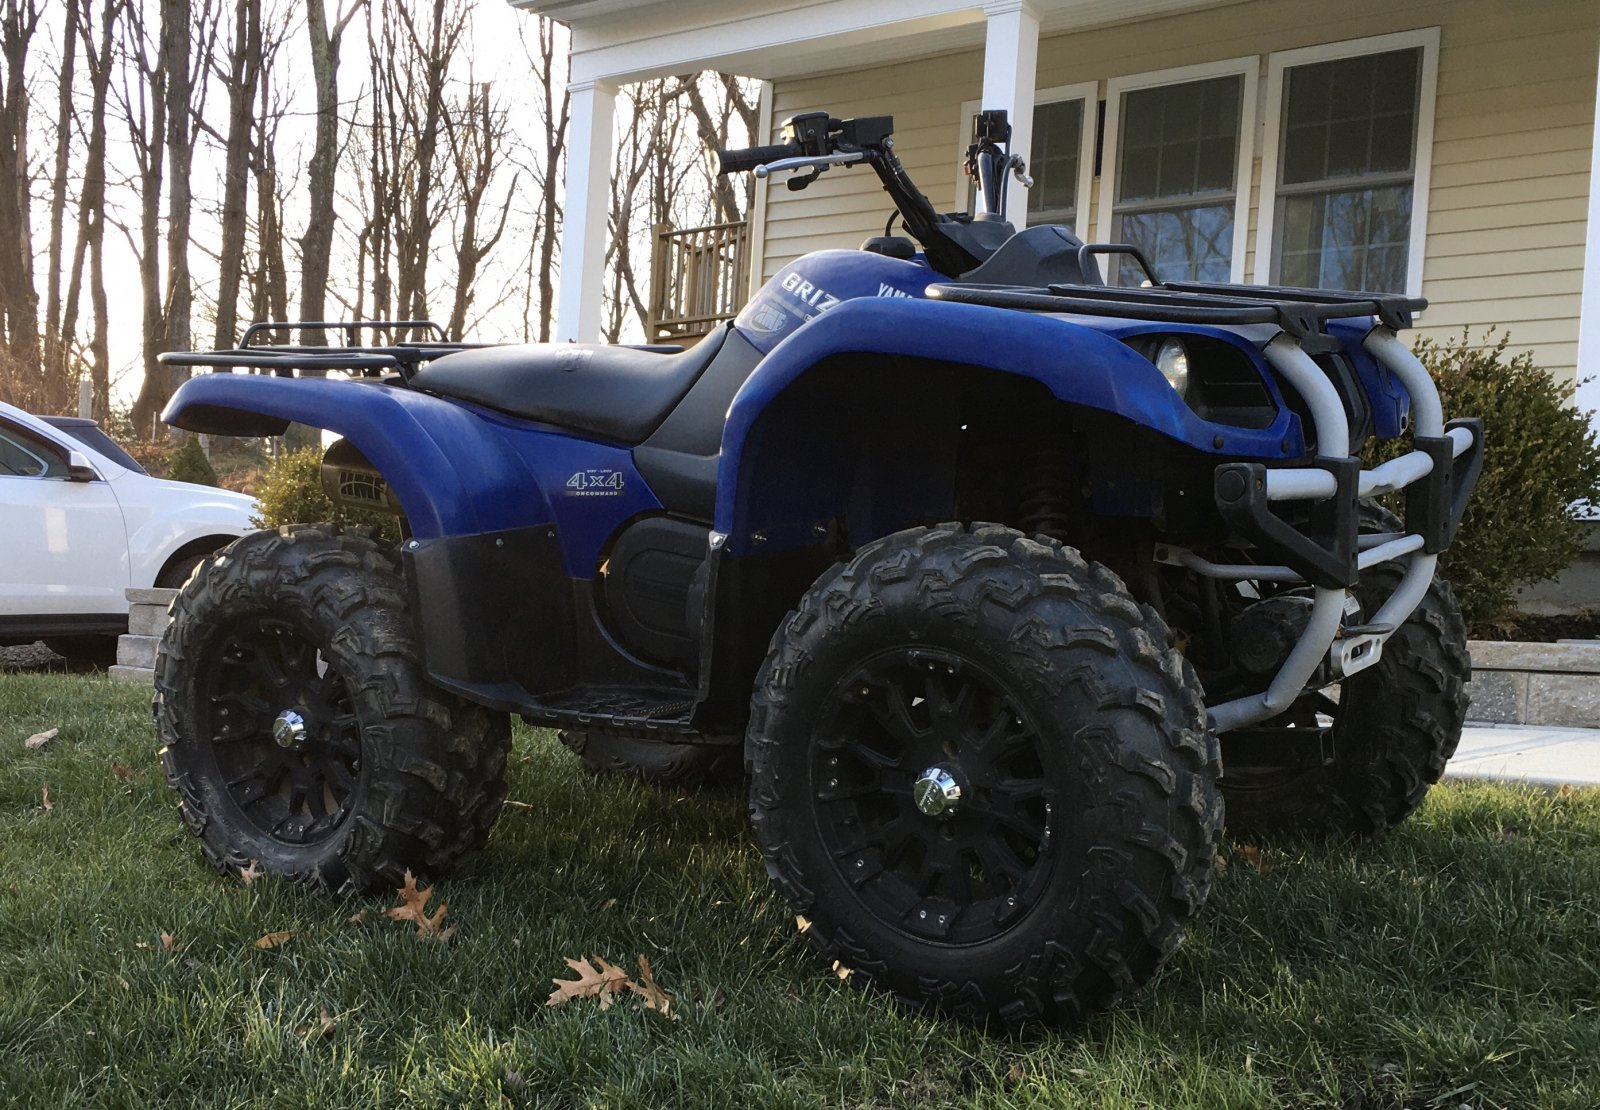 2004 Yamaha Grizzly Repairs